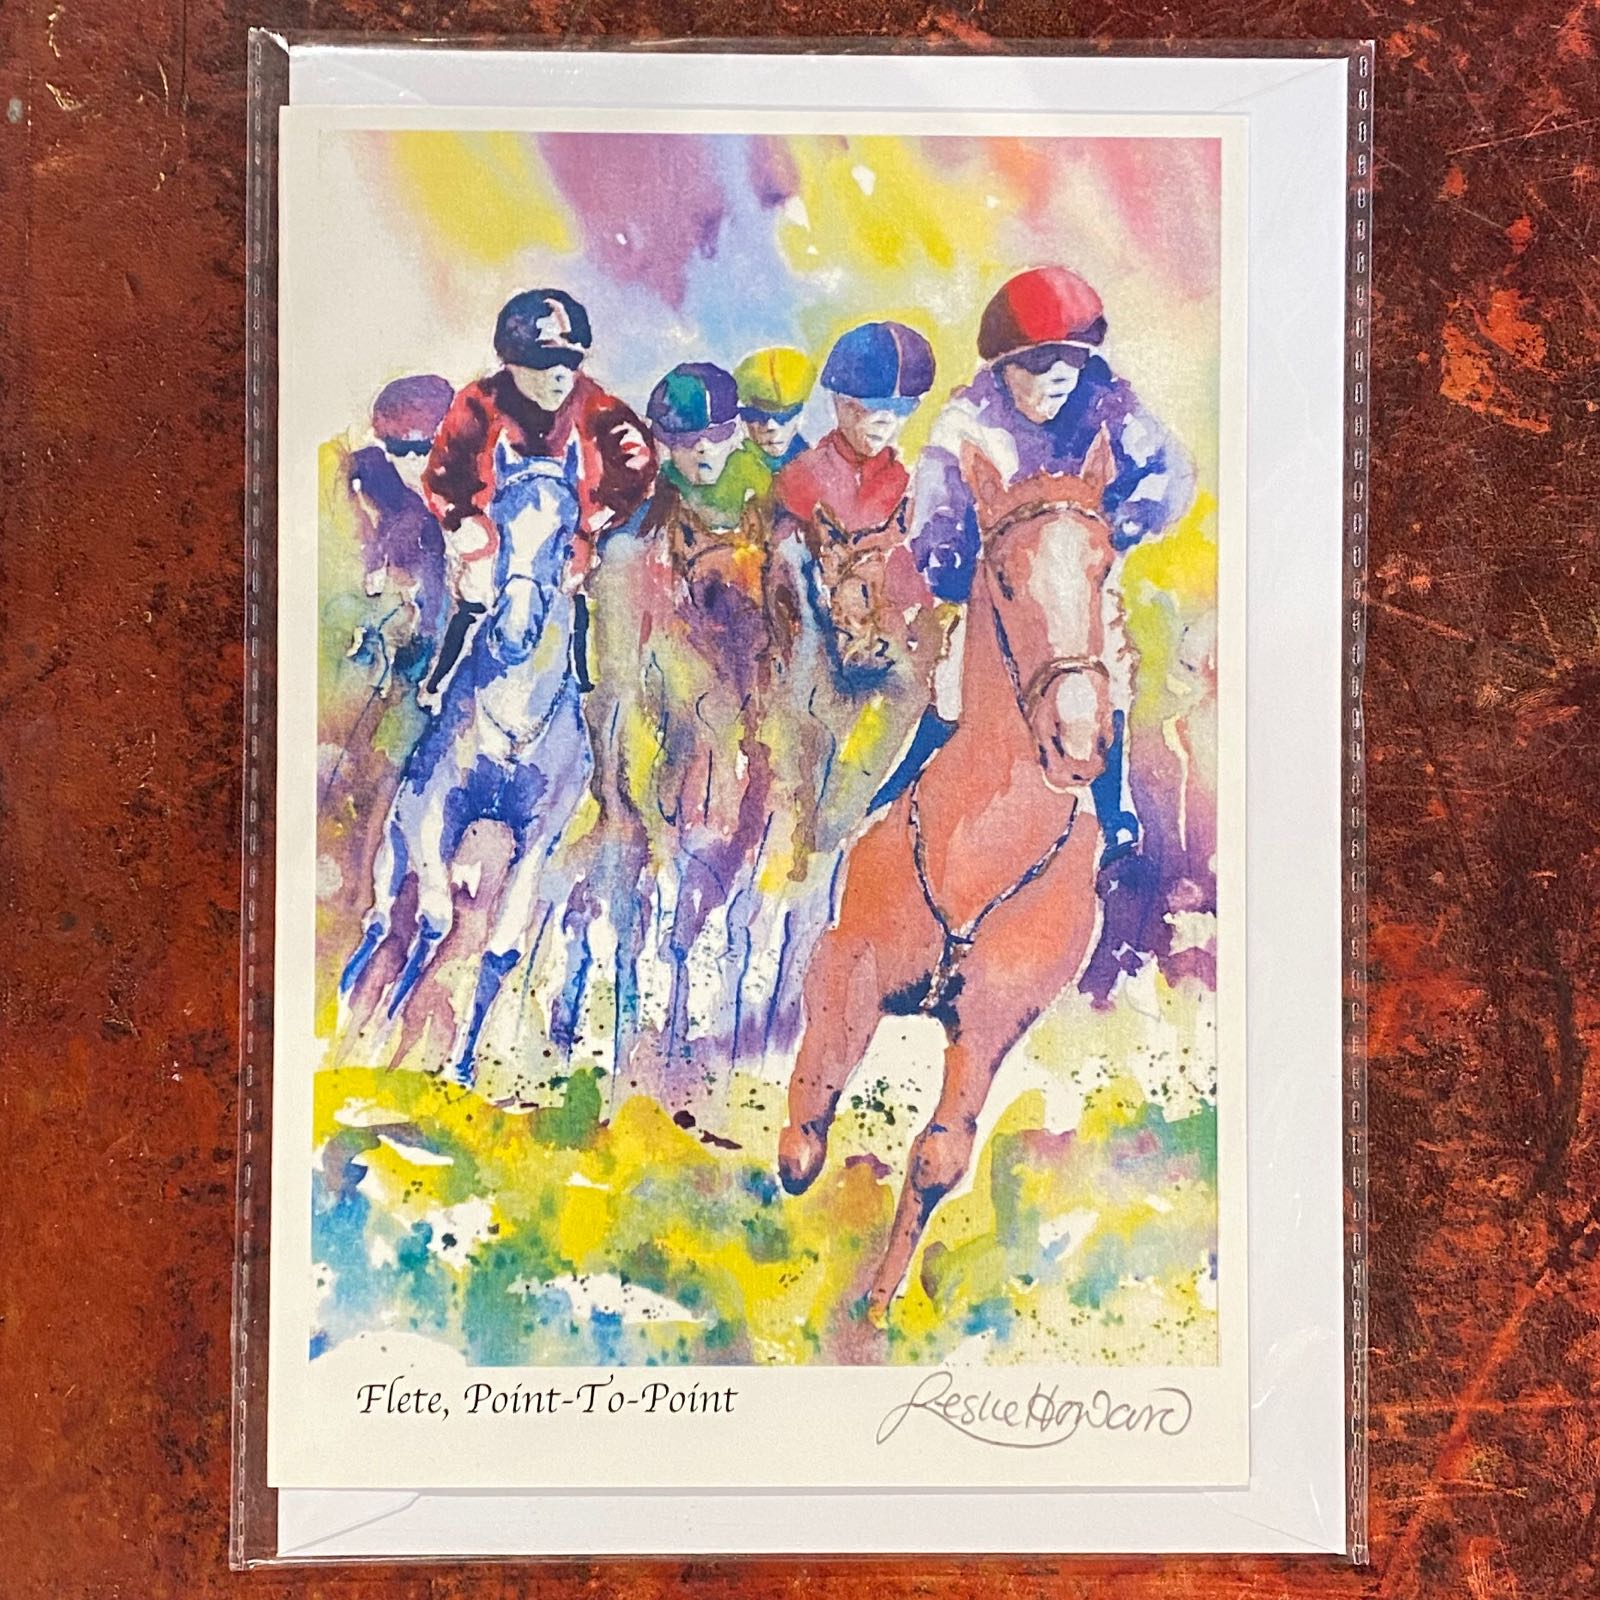 'Flete, Point-To-Point' Leslie Howard Card